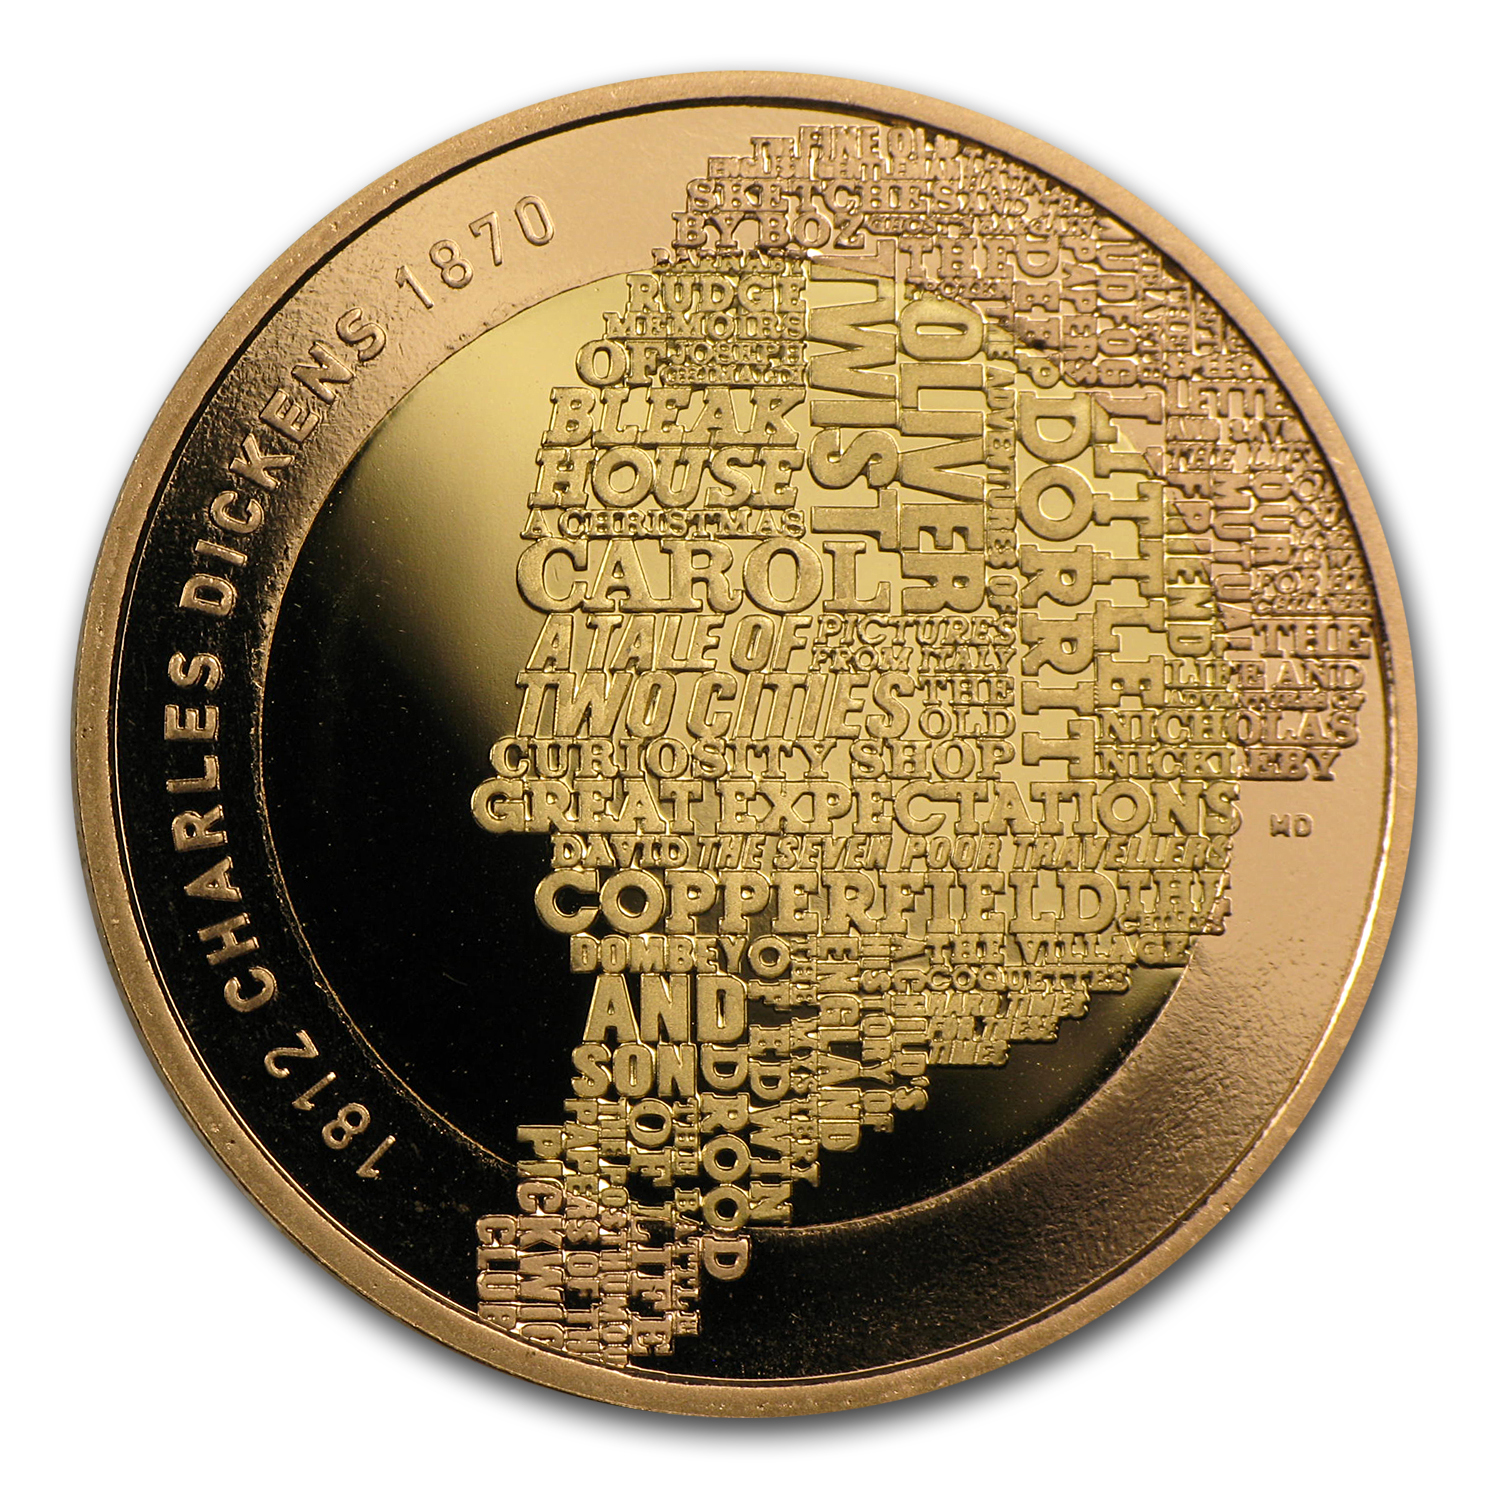 2012 Great Britain £2 Gold Proof - Charles Dickens 200th Anniv.